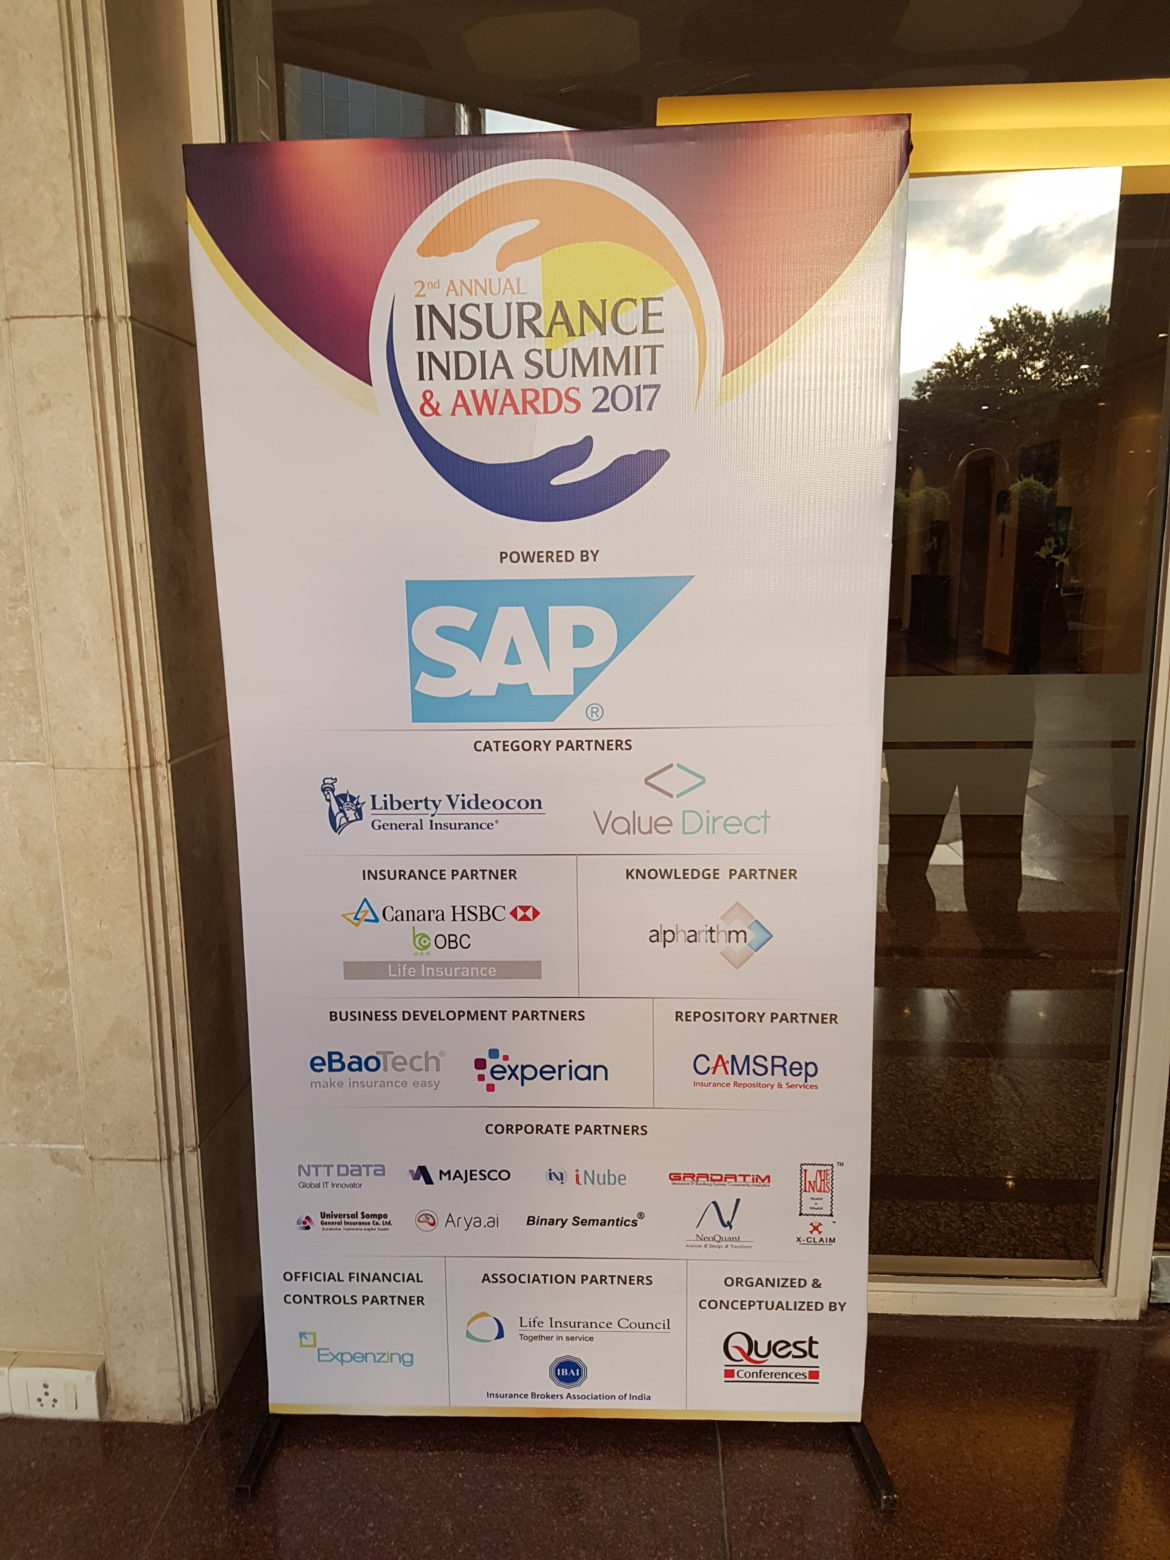 Alpharithm Standee 1 at the Insuance summit 2017